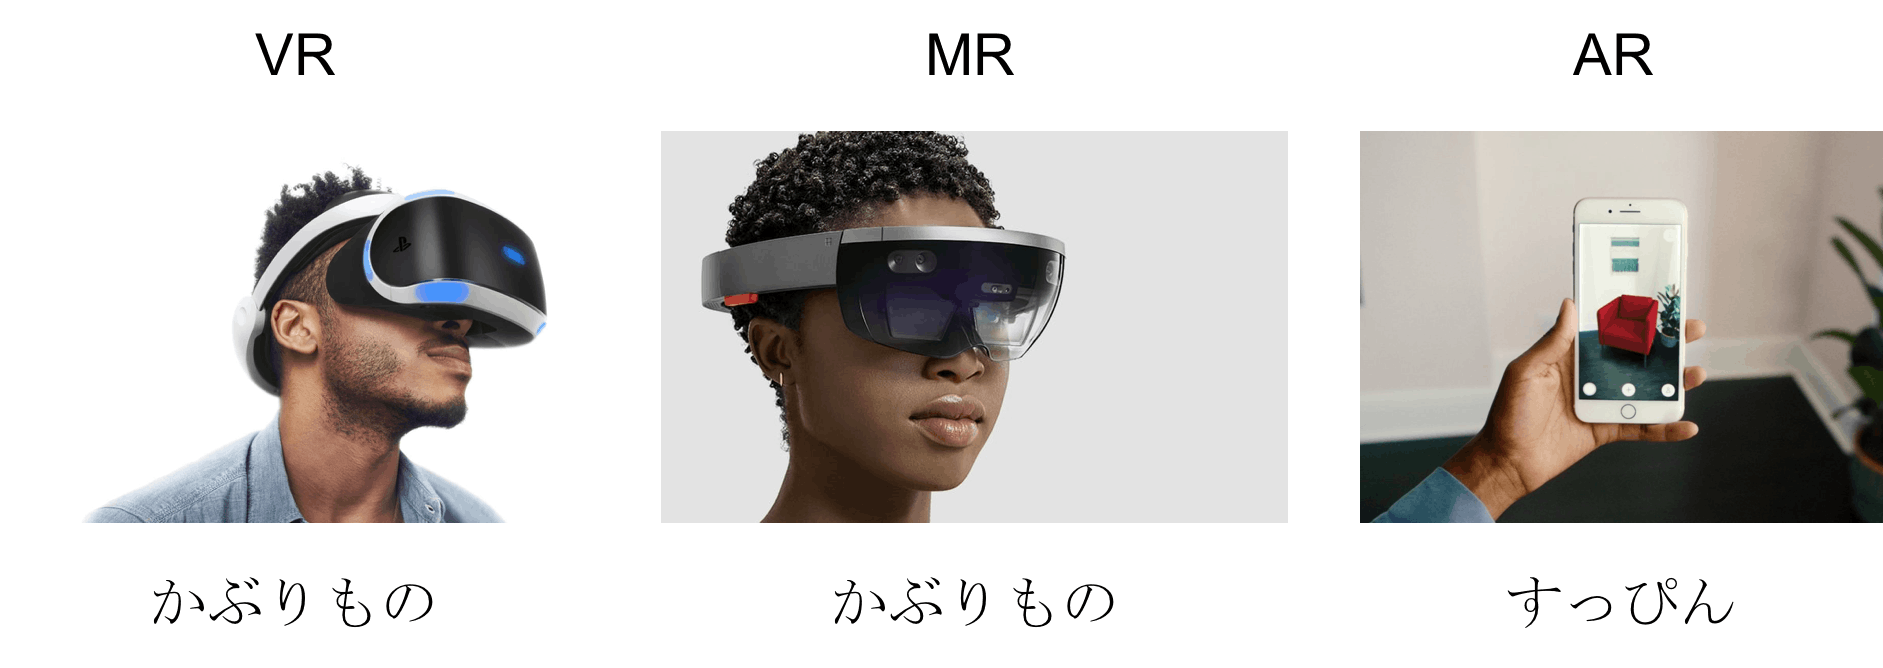 XR.png